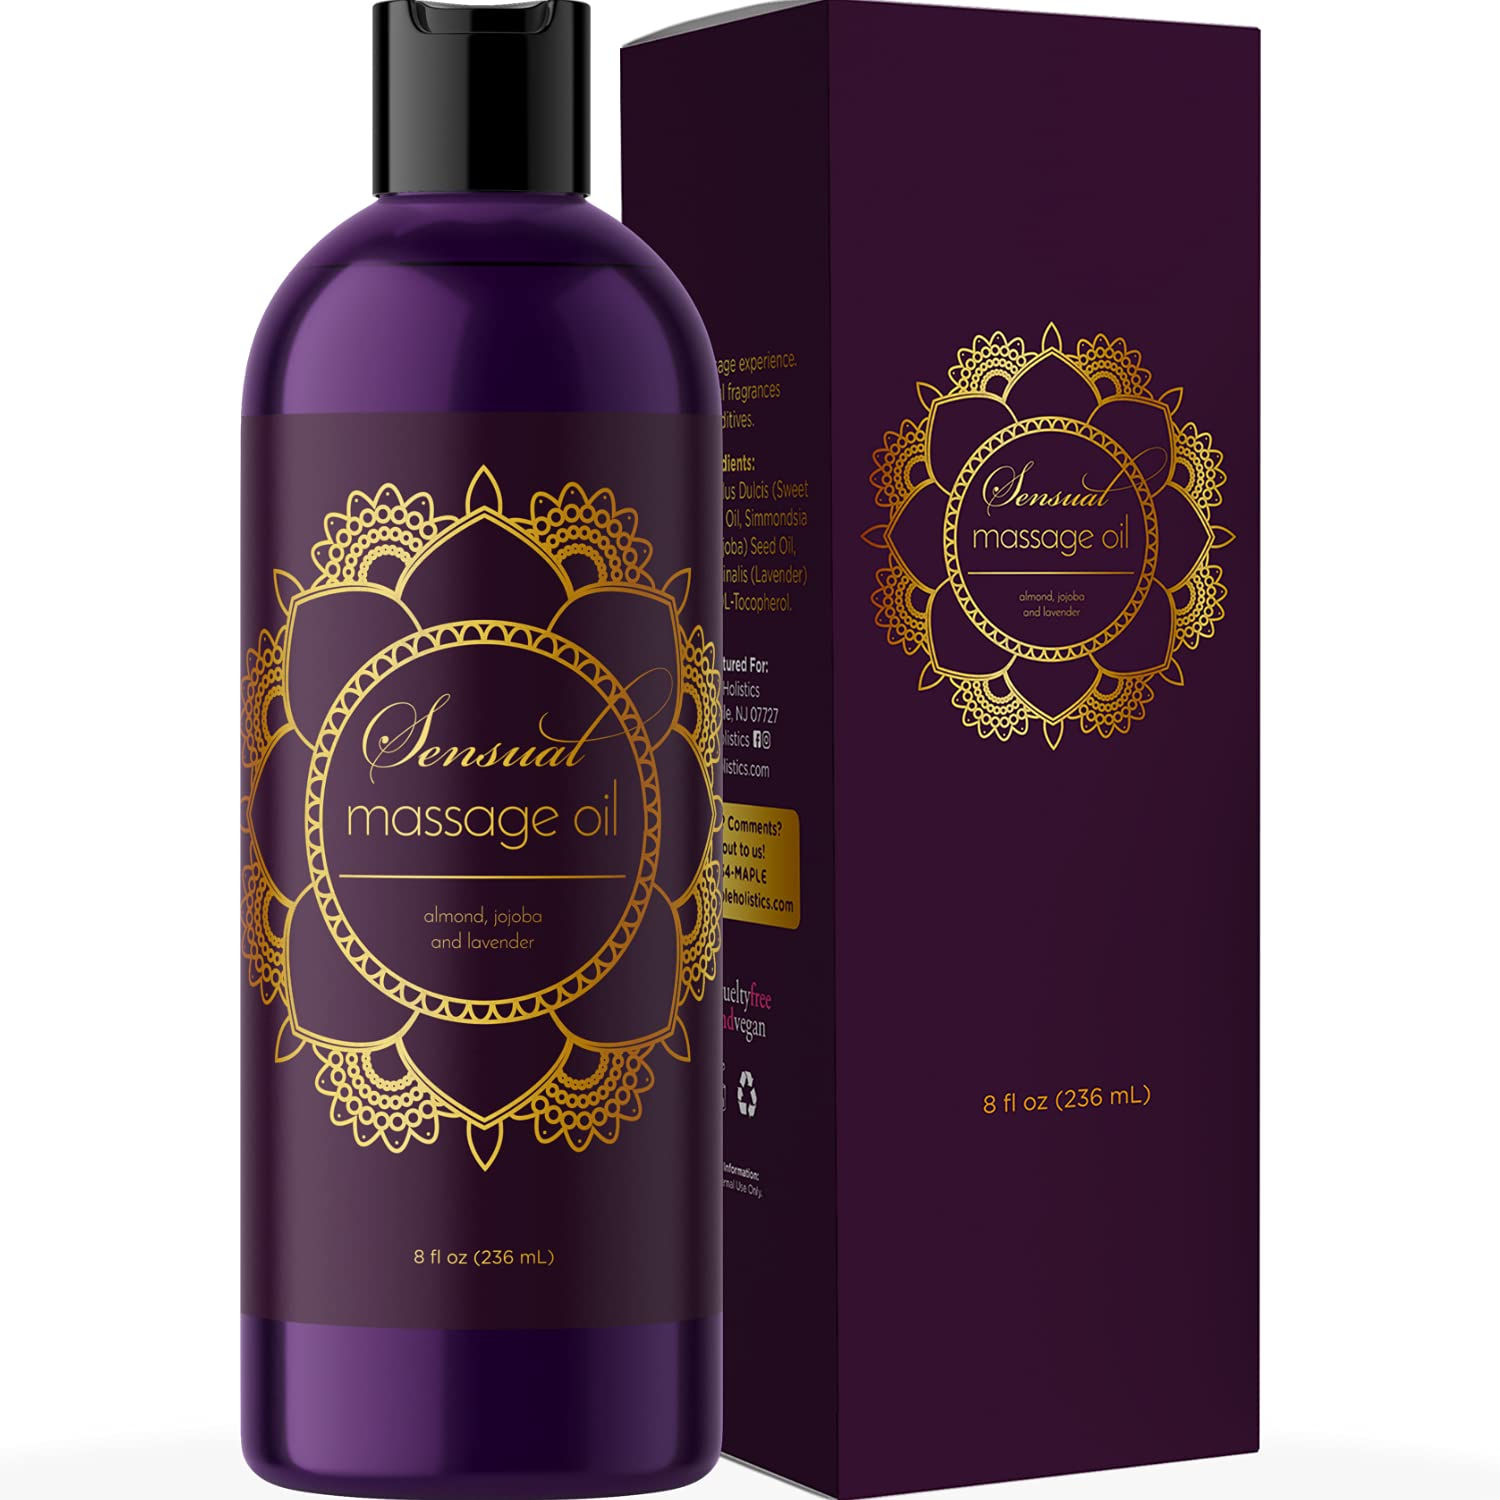 Sensual Massage Oil w/Pure Lavender Oil - Relaxing Almond & Jojoba Oil - Women & Men – 100% Natural Hypoallergenic Skin Therapy - USA Made